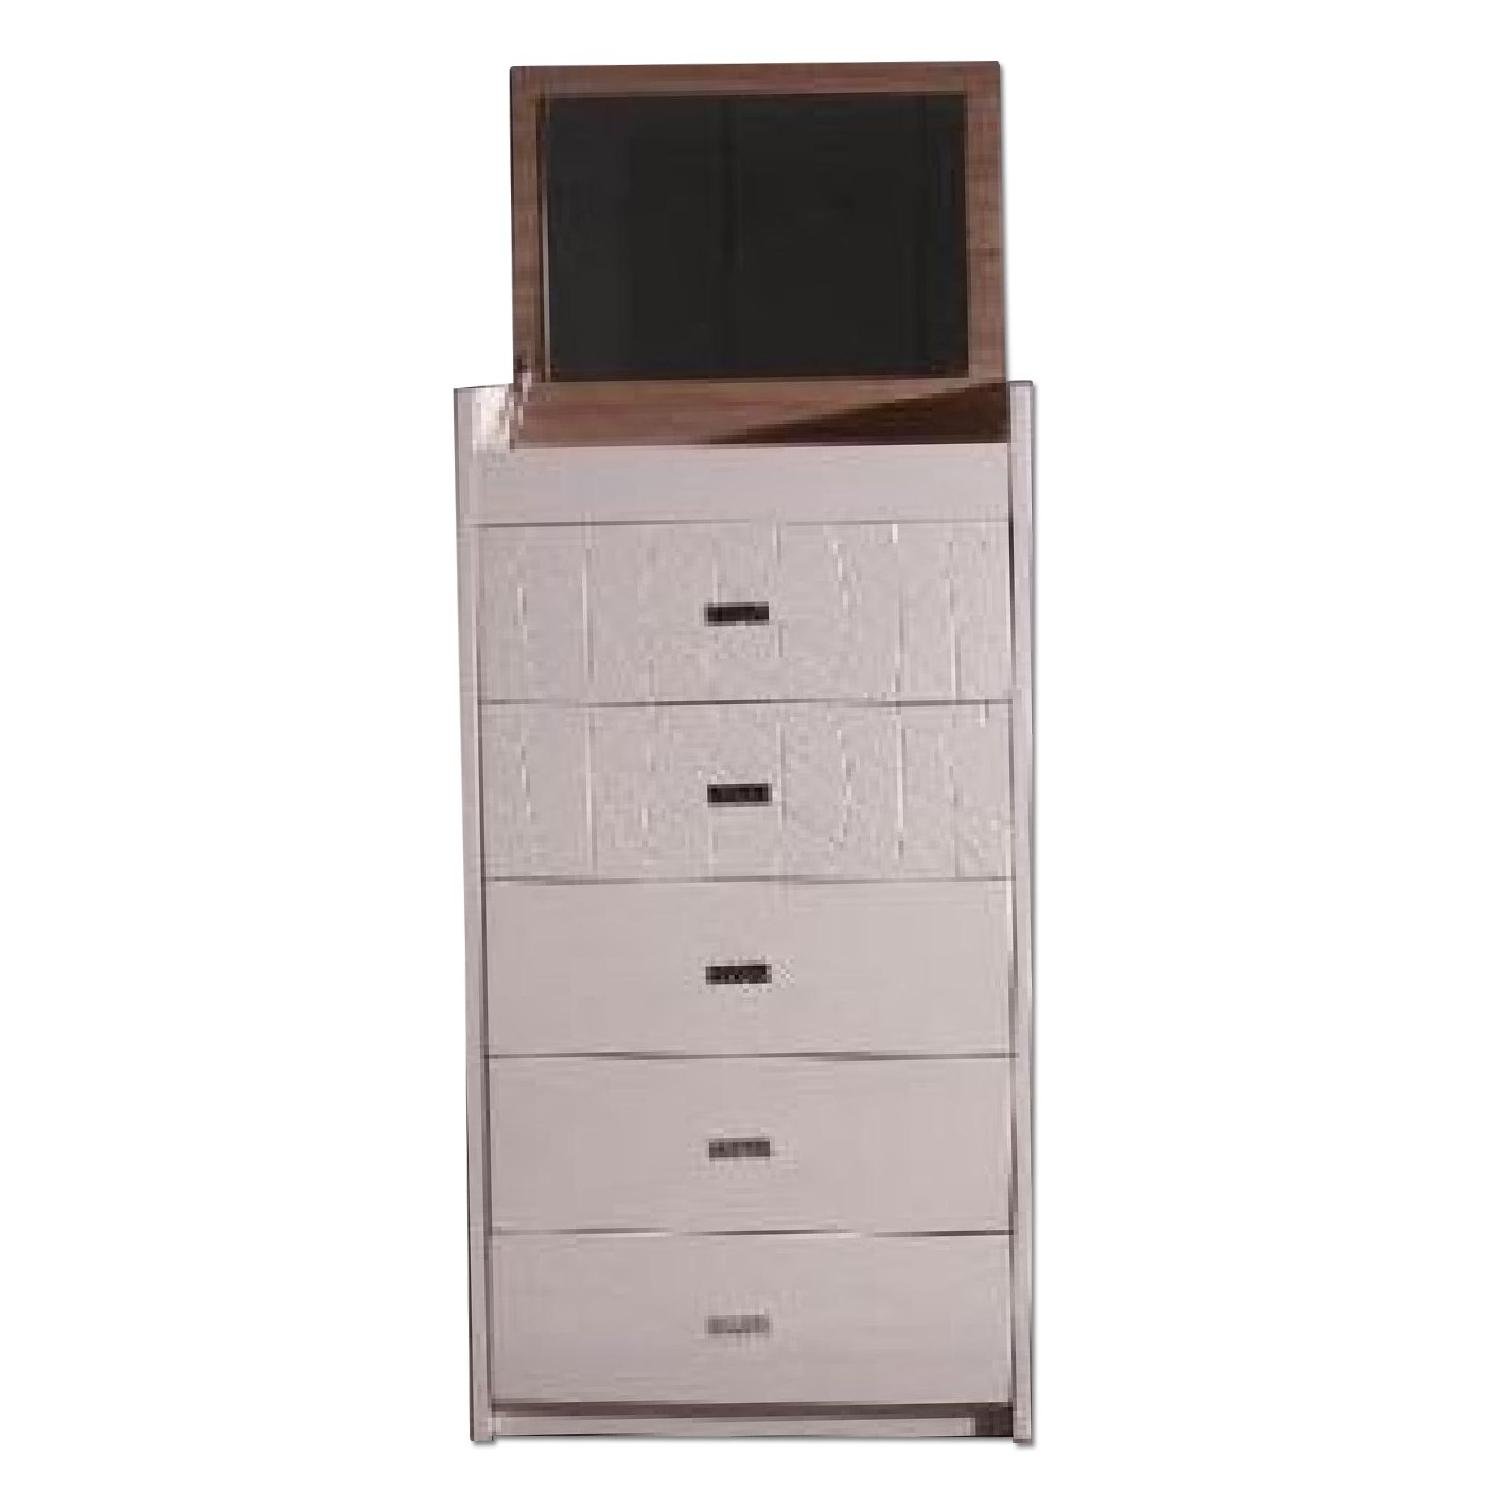 5-Drawer Chiffonier in Beige High Gloss Finish w/ Fold-Up Mirror & Jewelry Storage Compartments